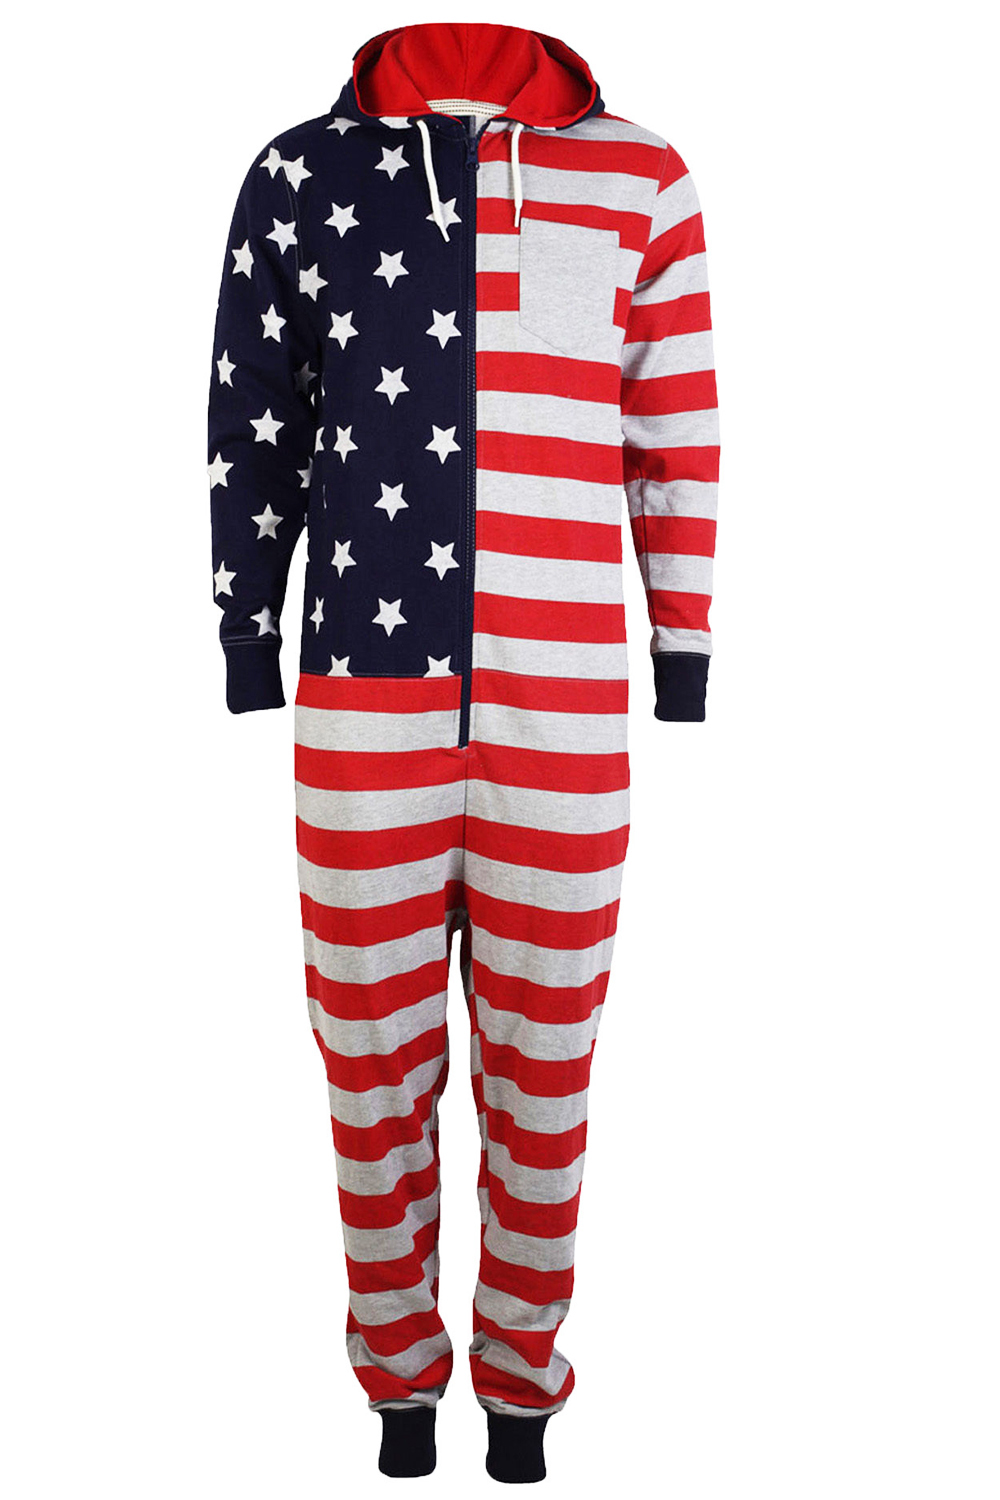 Tokyo-Laundry-Adults-All-In-One-American-USA-Flag-Print-Hooded-Lounge-Jumpsuit thumbnail 6